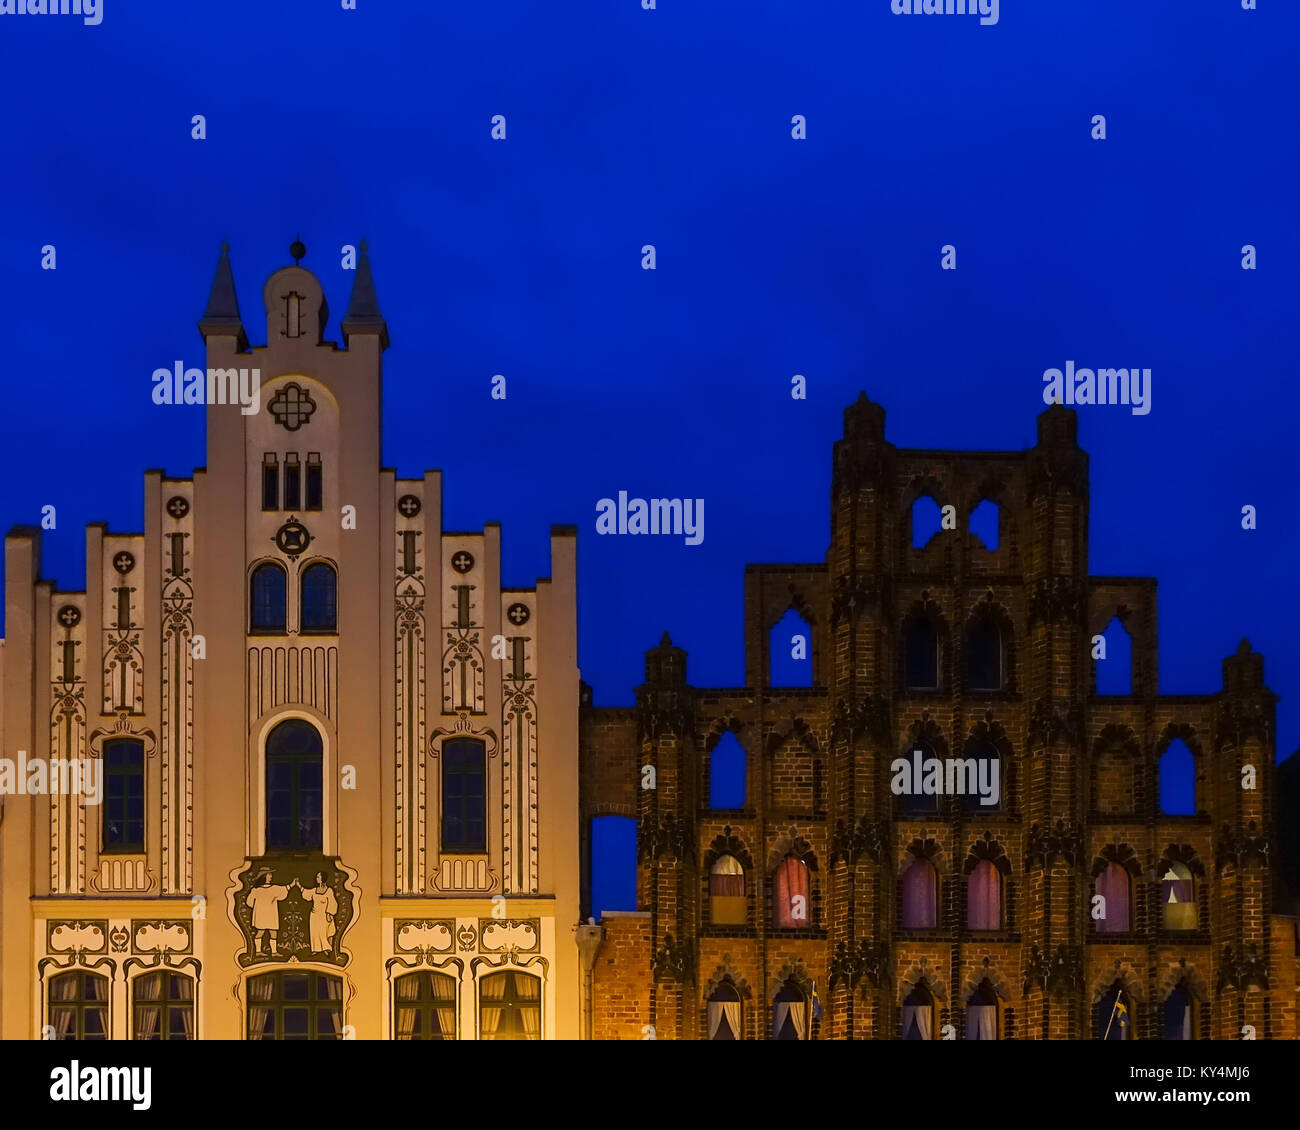 Gables of two historical buildings in Wismar at blue hour - Stock Image